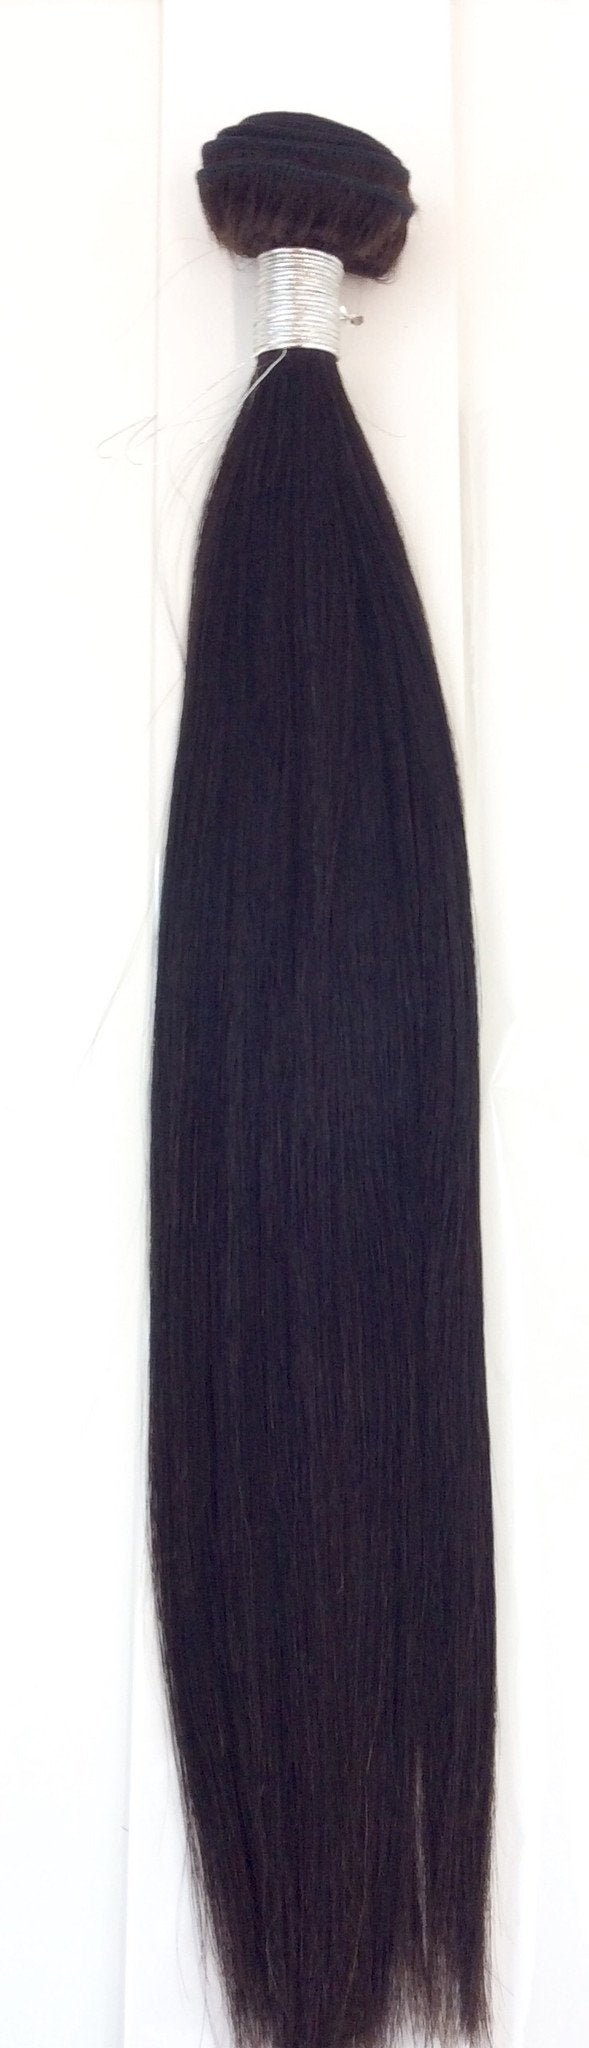 "22"" 100% Premium Virgin Peruvian Remy #Natural"